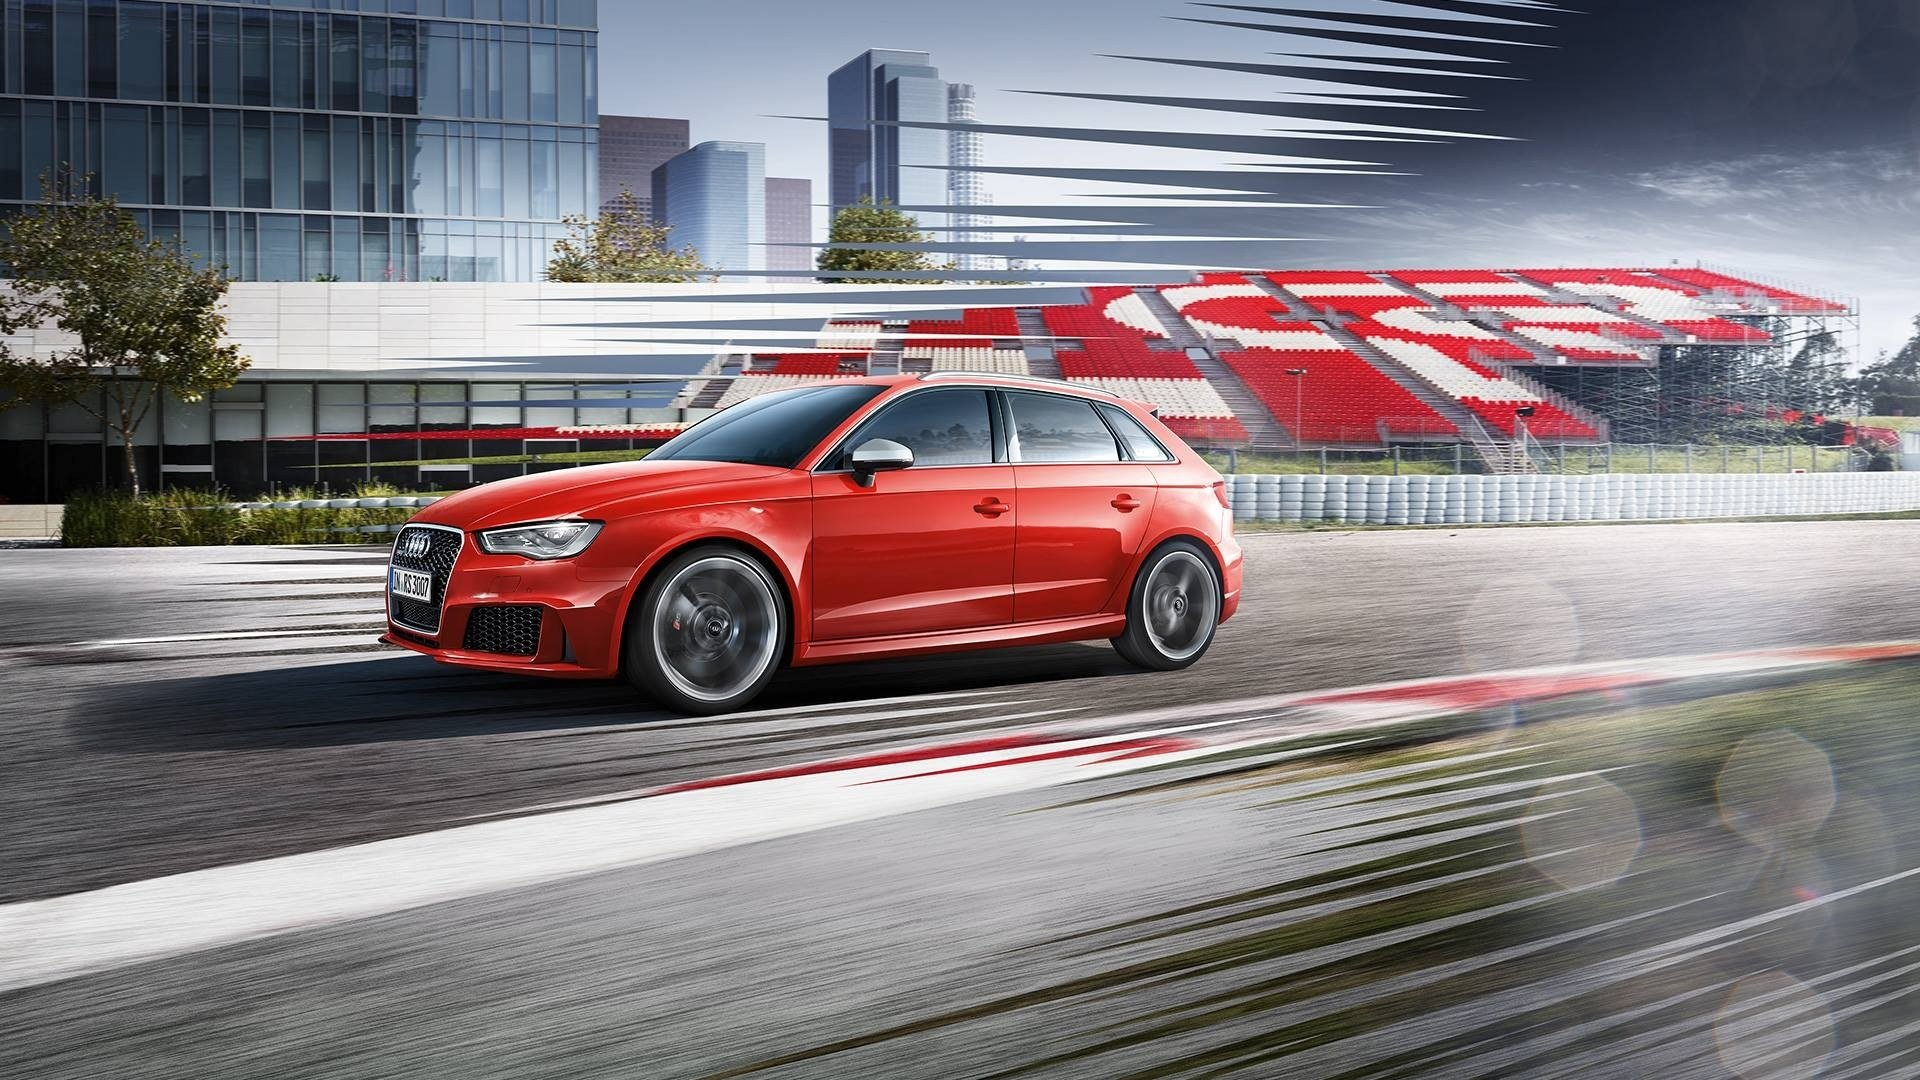 Latest Audi Audi Rs3 Car Red Cars Wallpapers Hd Desktop And Free Download